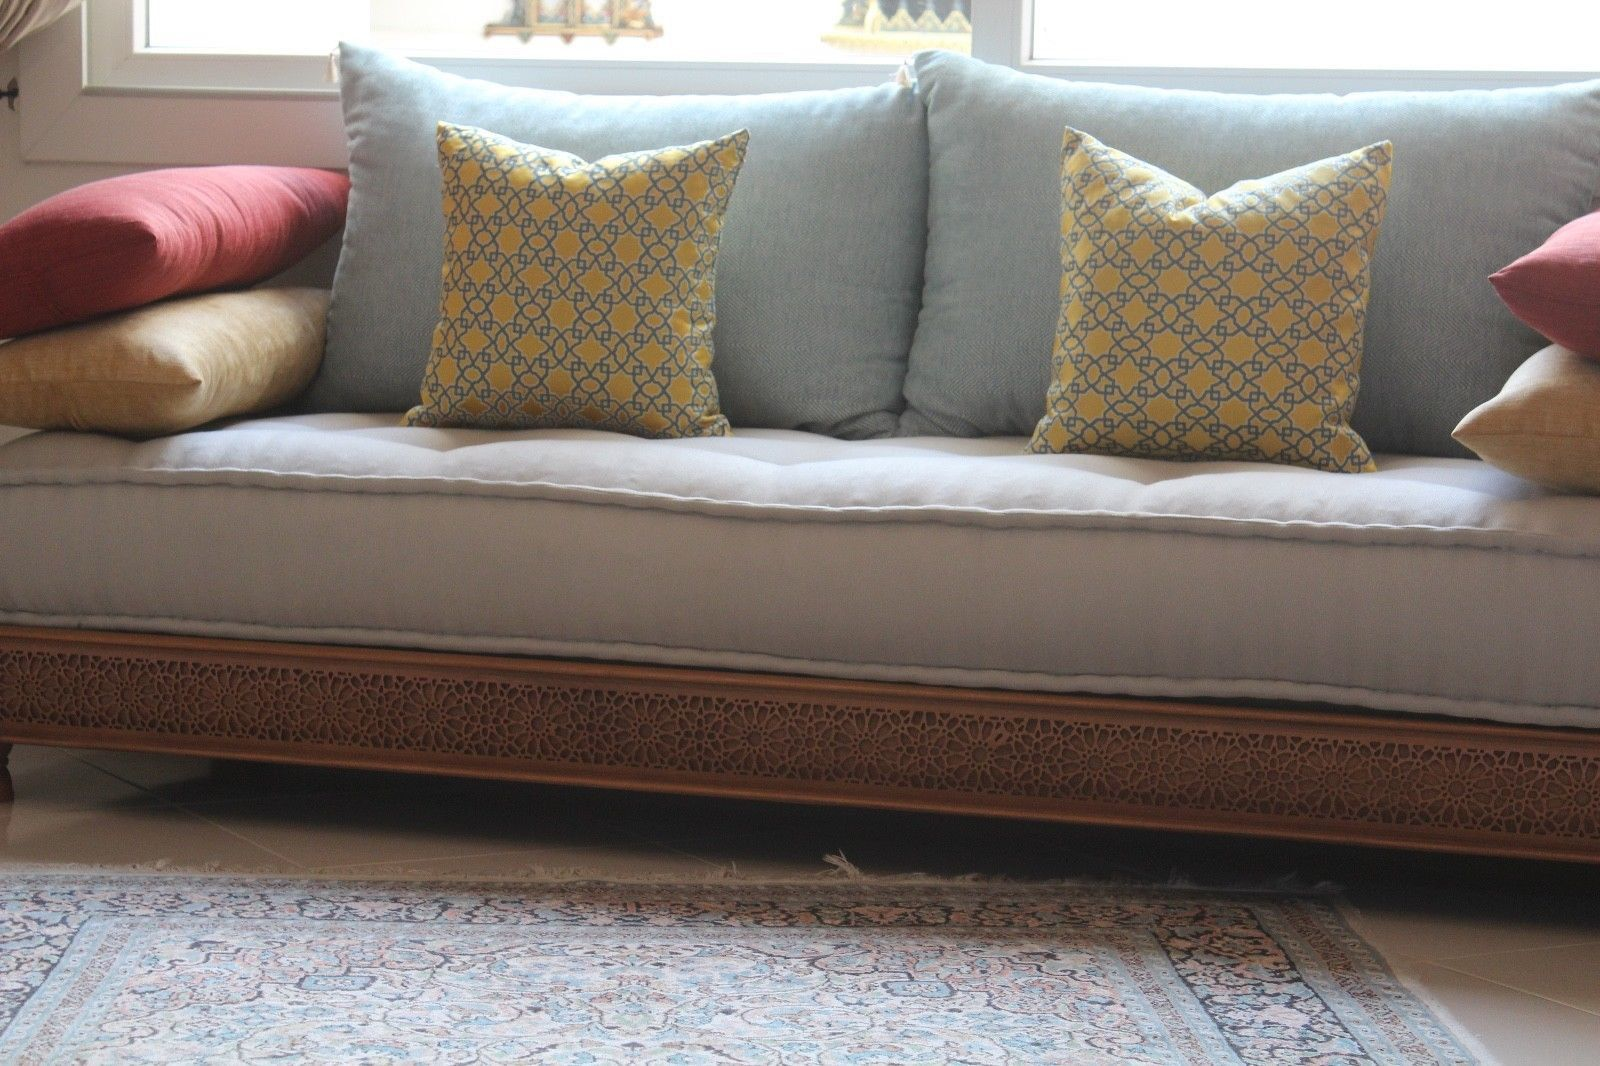 Beautiful Handcrafted Moroccan Sofa Daybed Divan Sofa Bed Delivery Available By Moroccanlegacyuk On Etsy Sofa Sofa Bed Bed